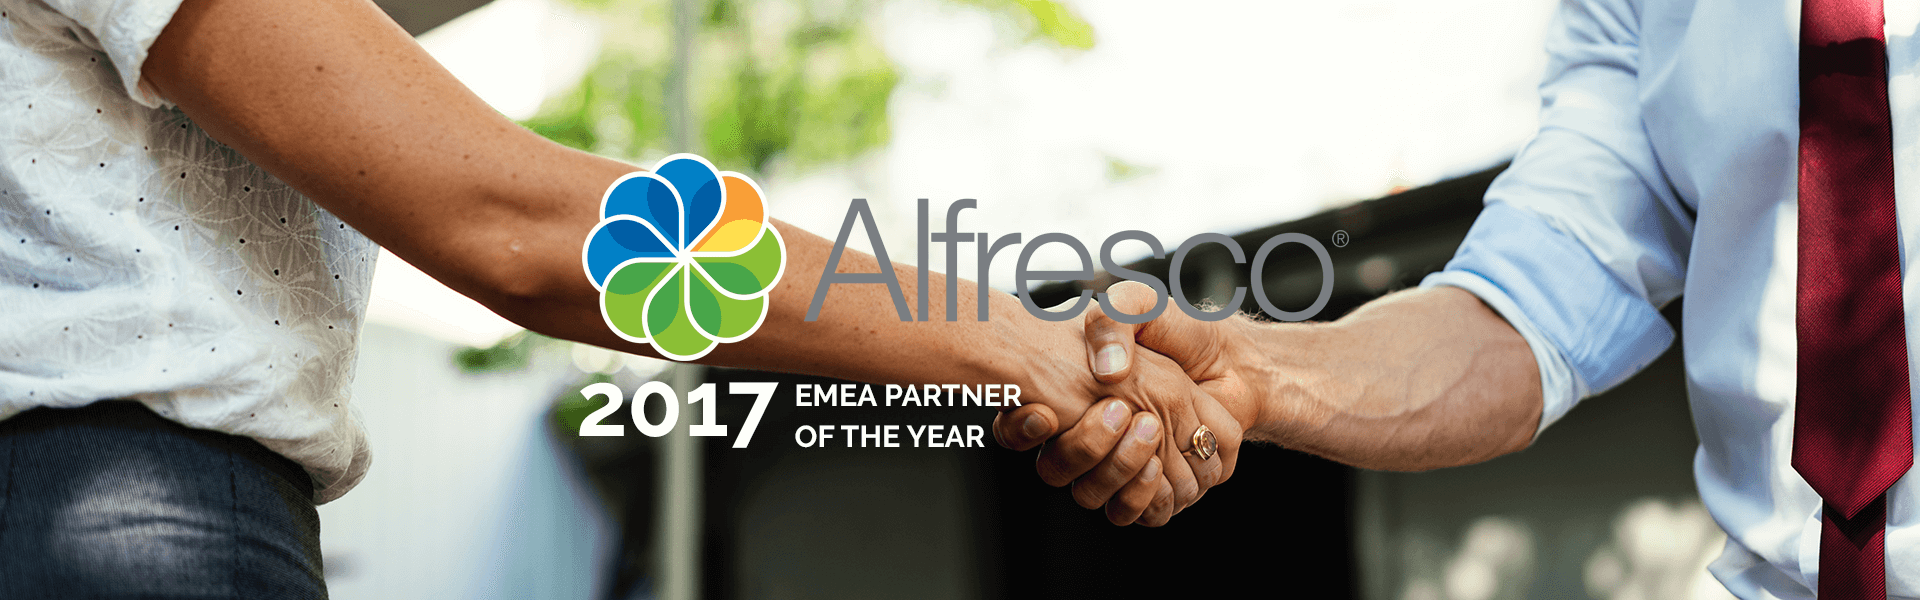 alfresco-partner-of-the-year-incentro